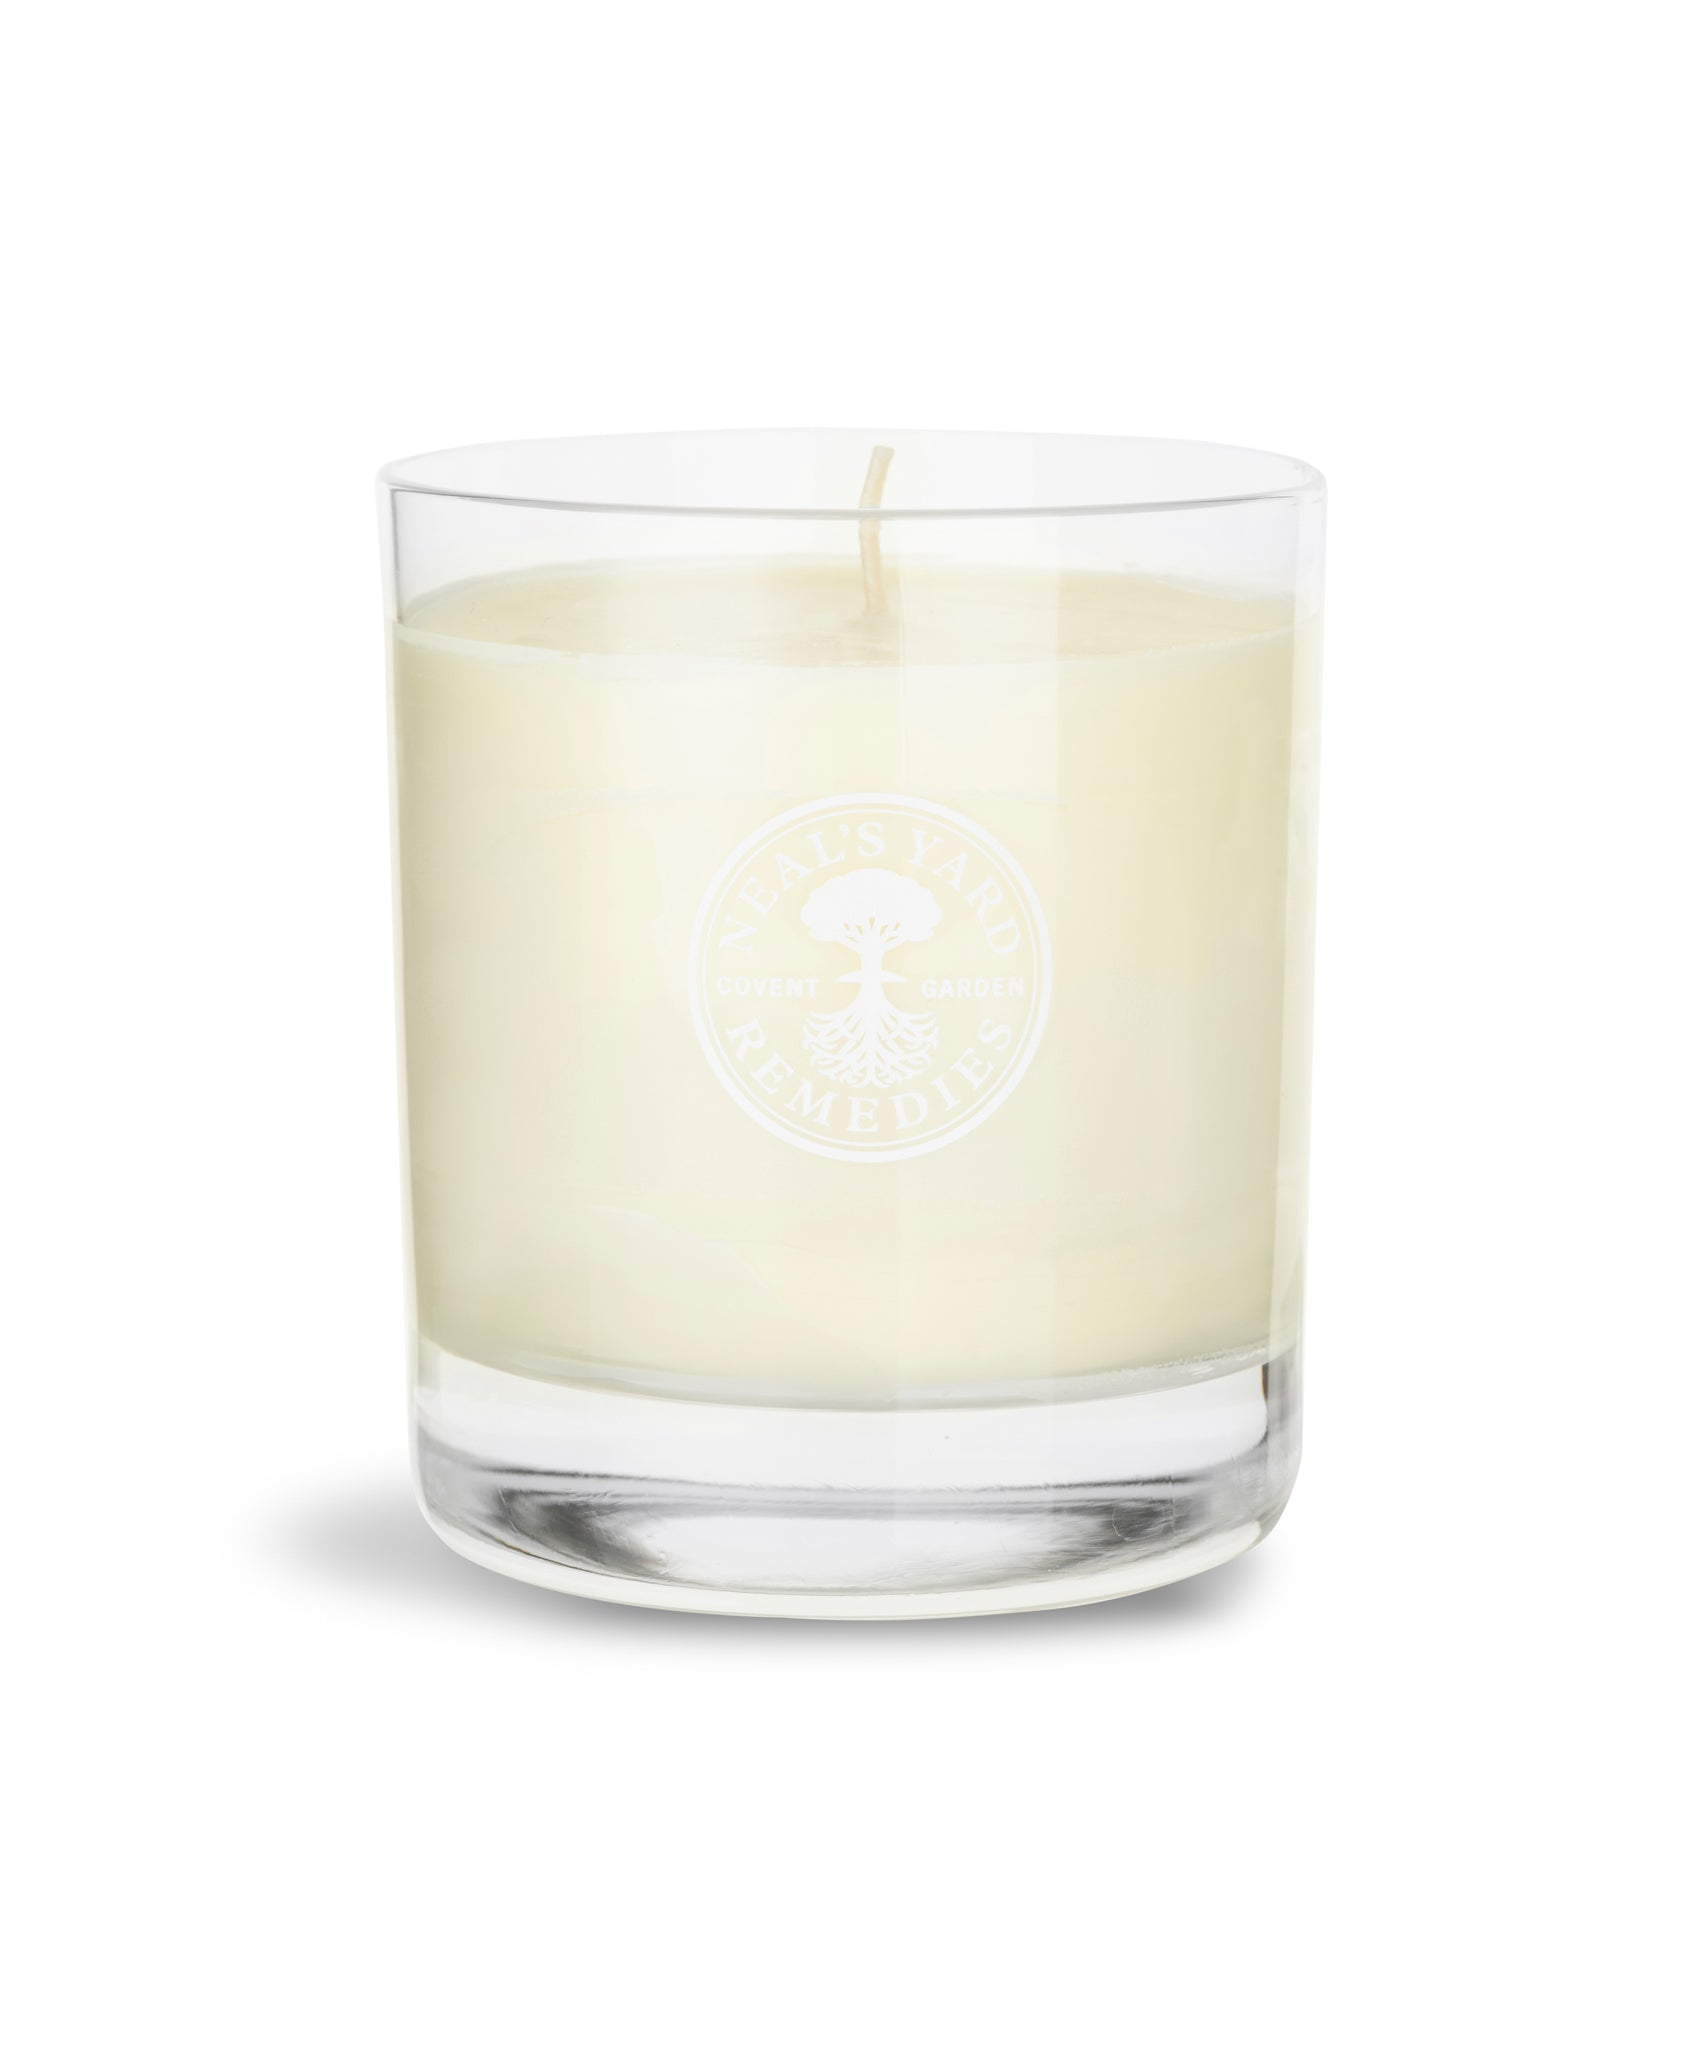 Organic Aromatherapy Candle - Balancing by Neal's Yard Remedies